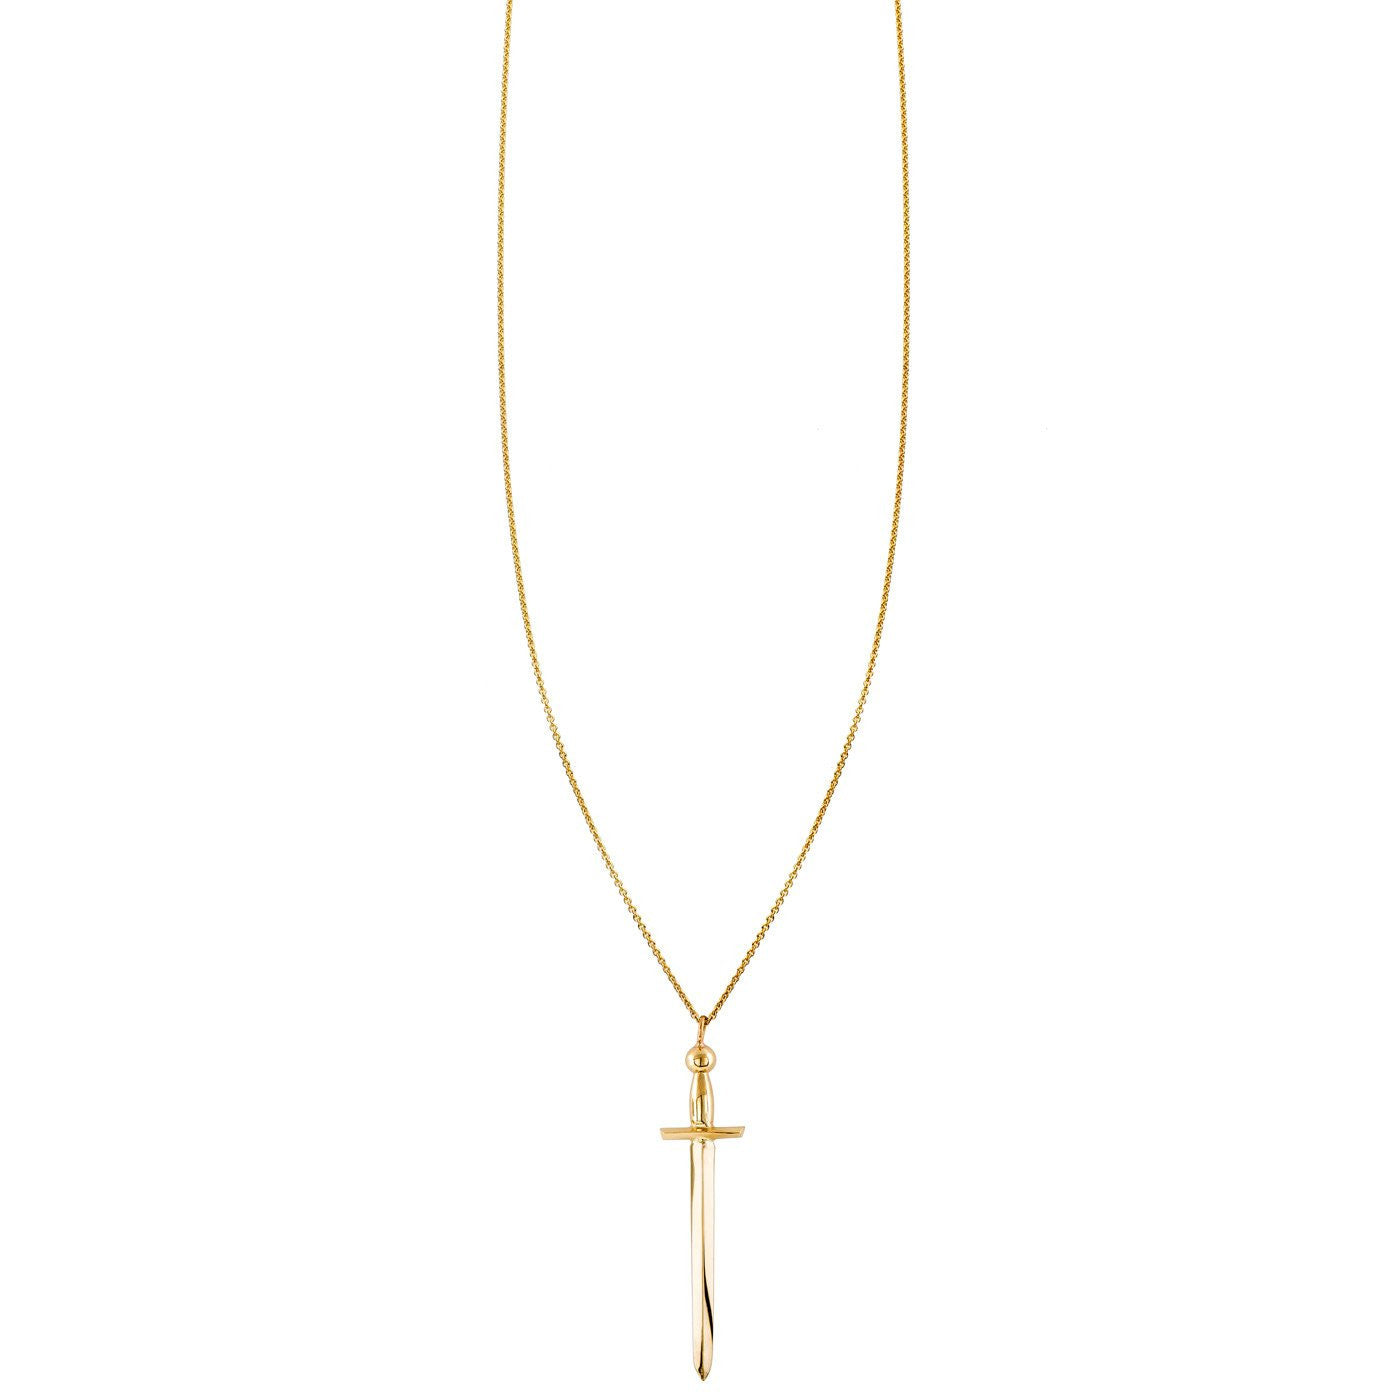 Polished 10k Rose Gold Crossing Daggers Charm Pendant Necklace